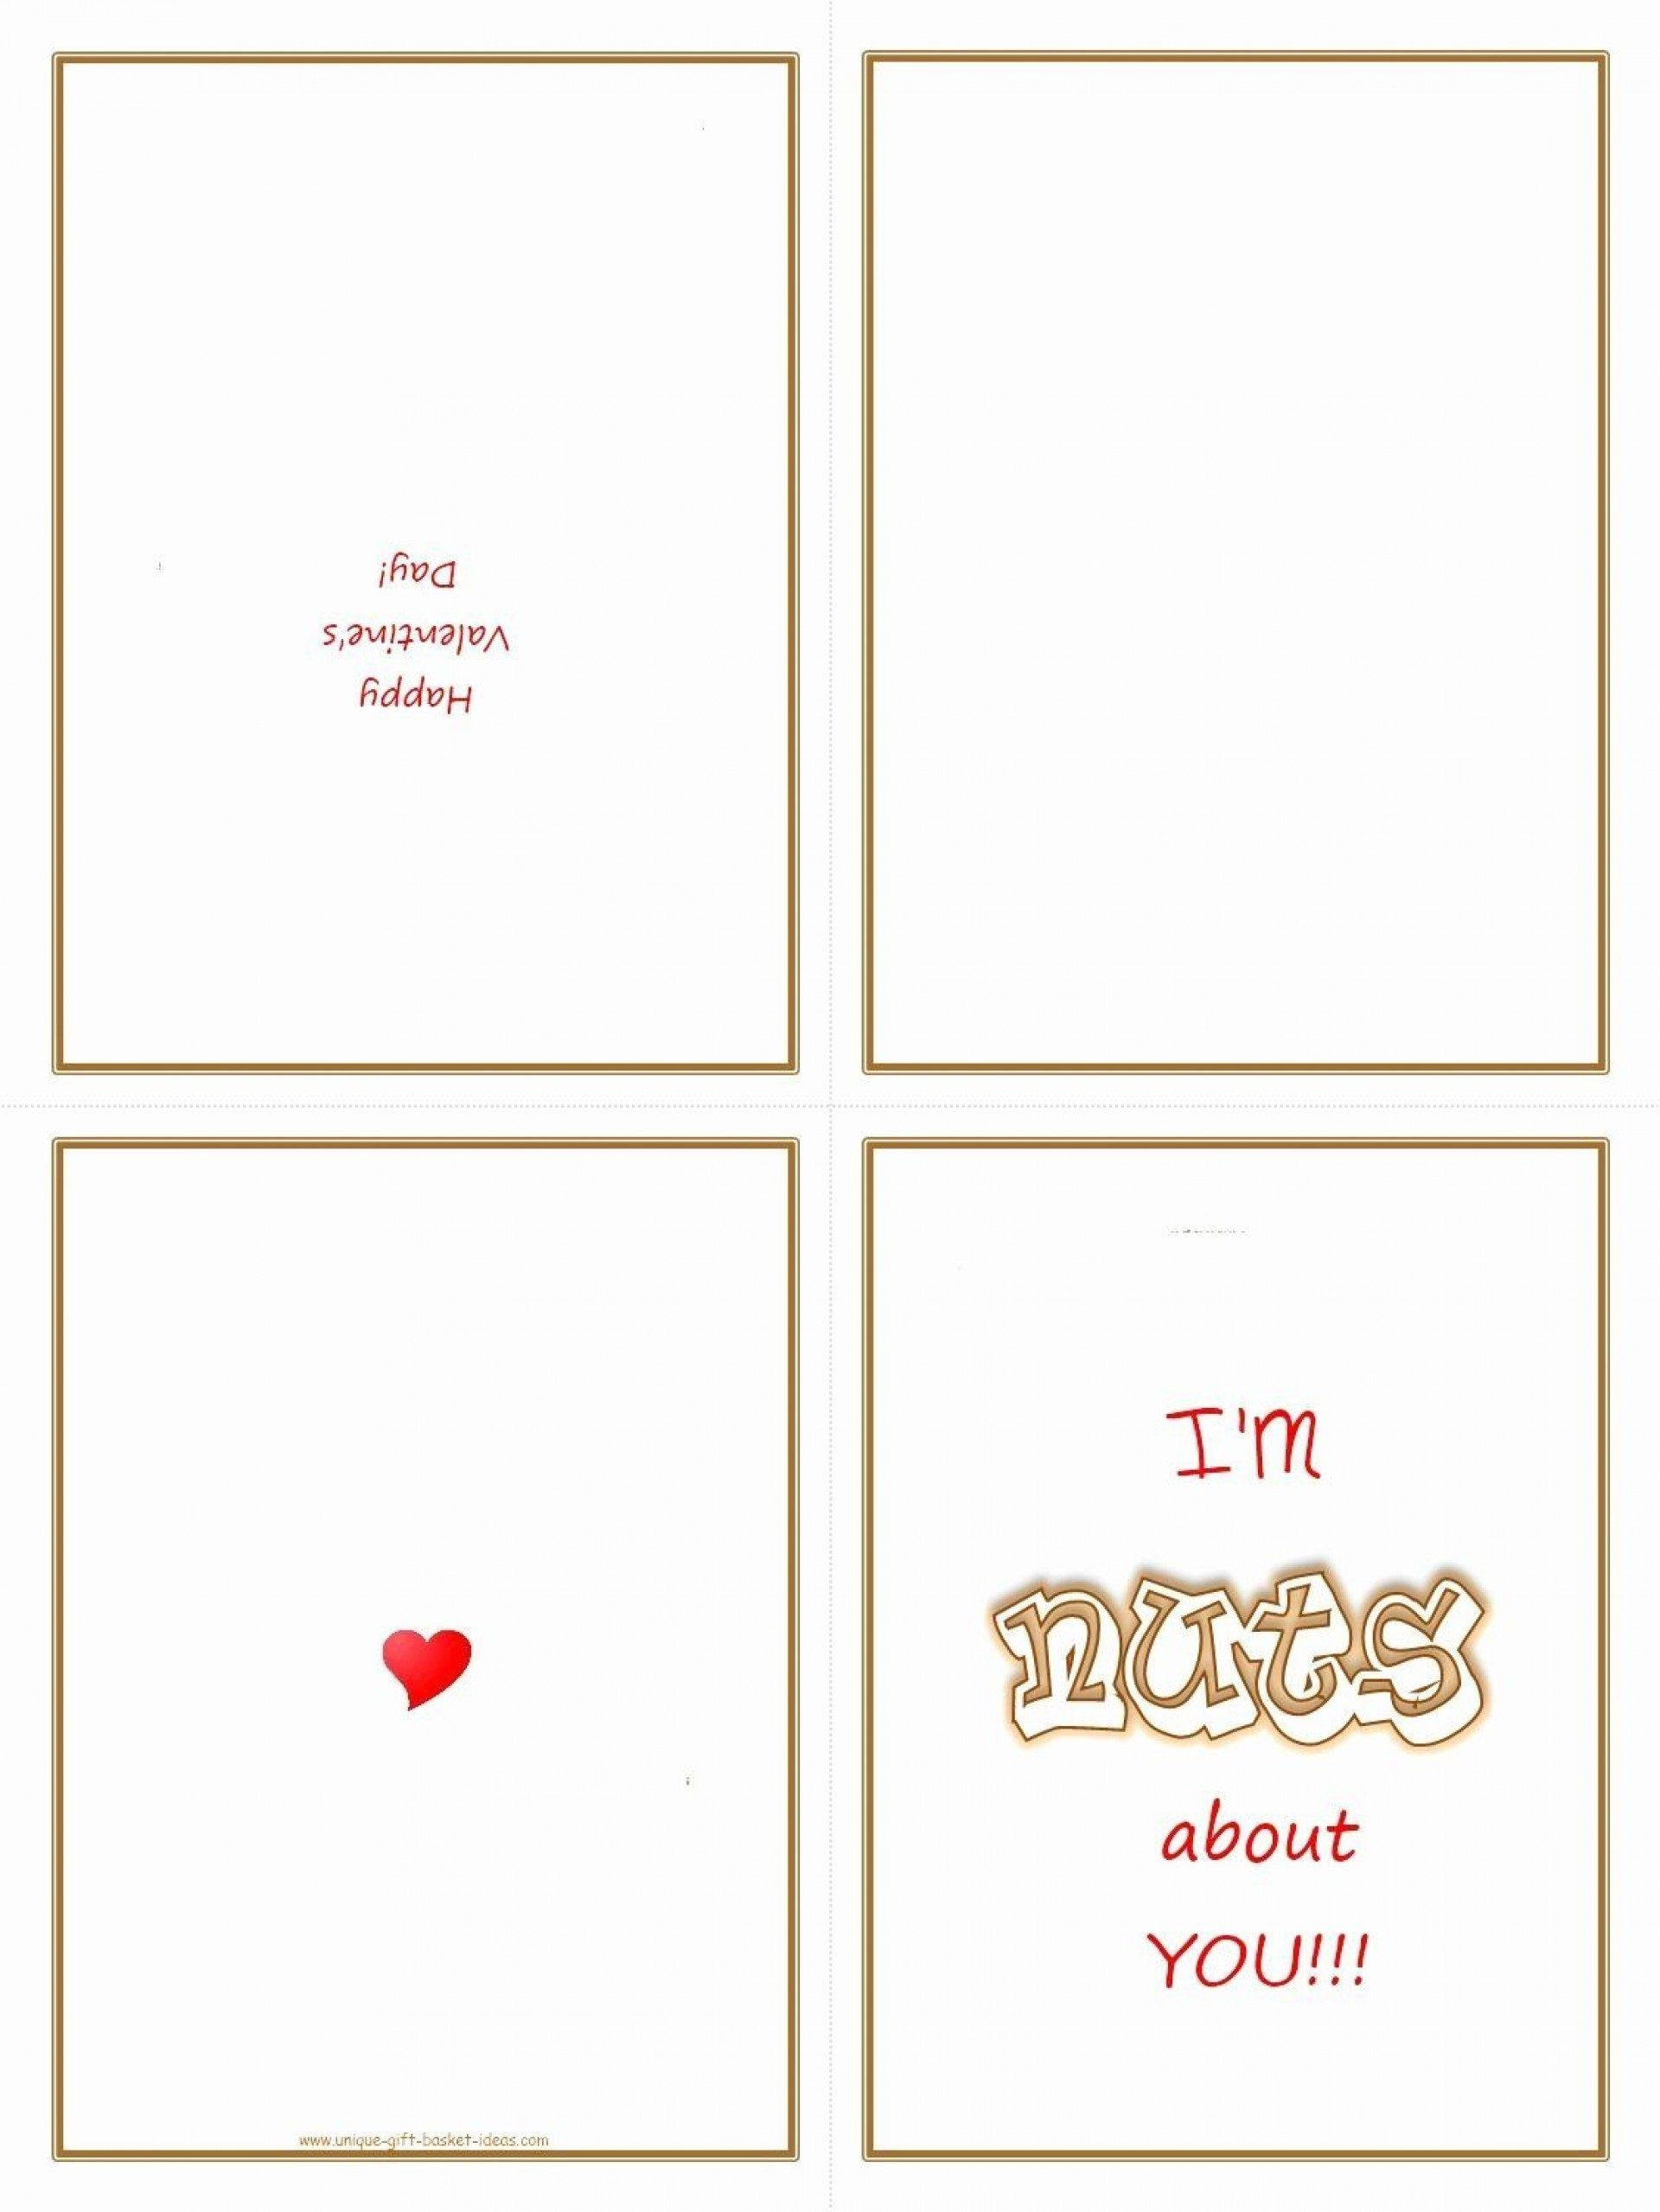 010 Stupendou Birthday Card Template For Word 2010 Concept  Greeting Microsoft1920